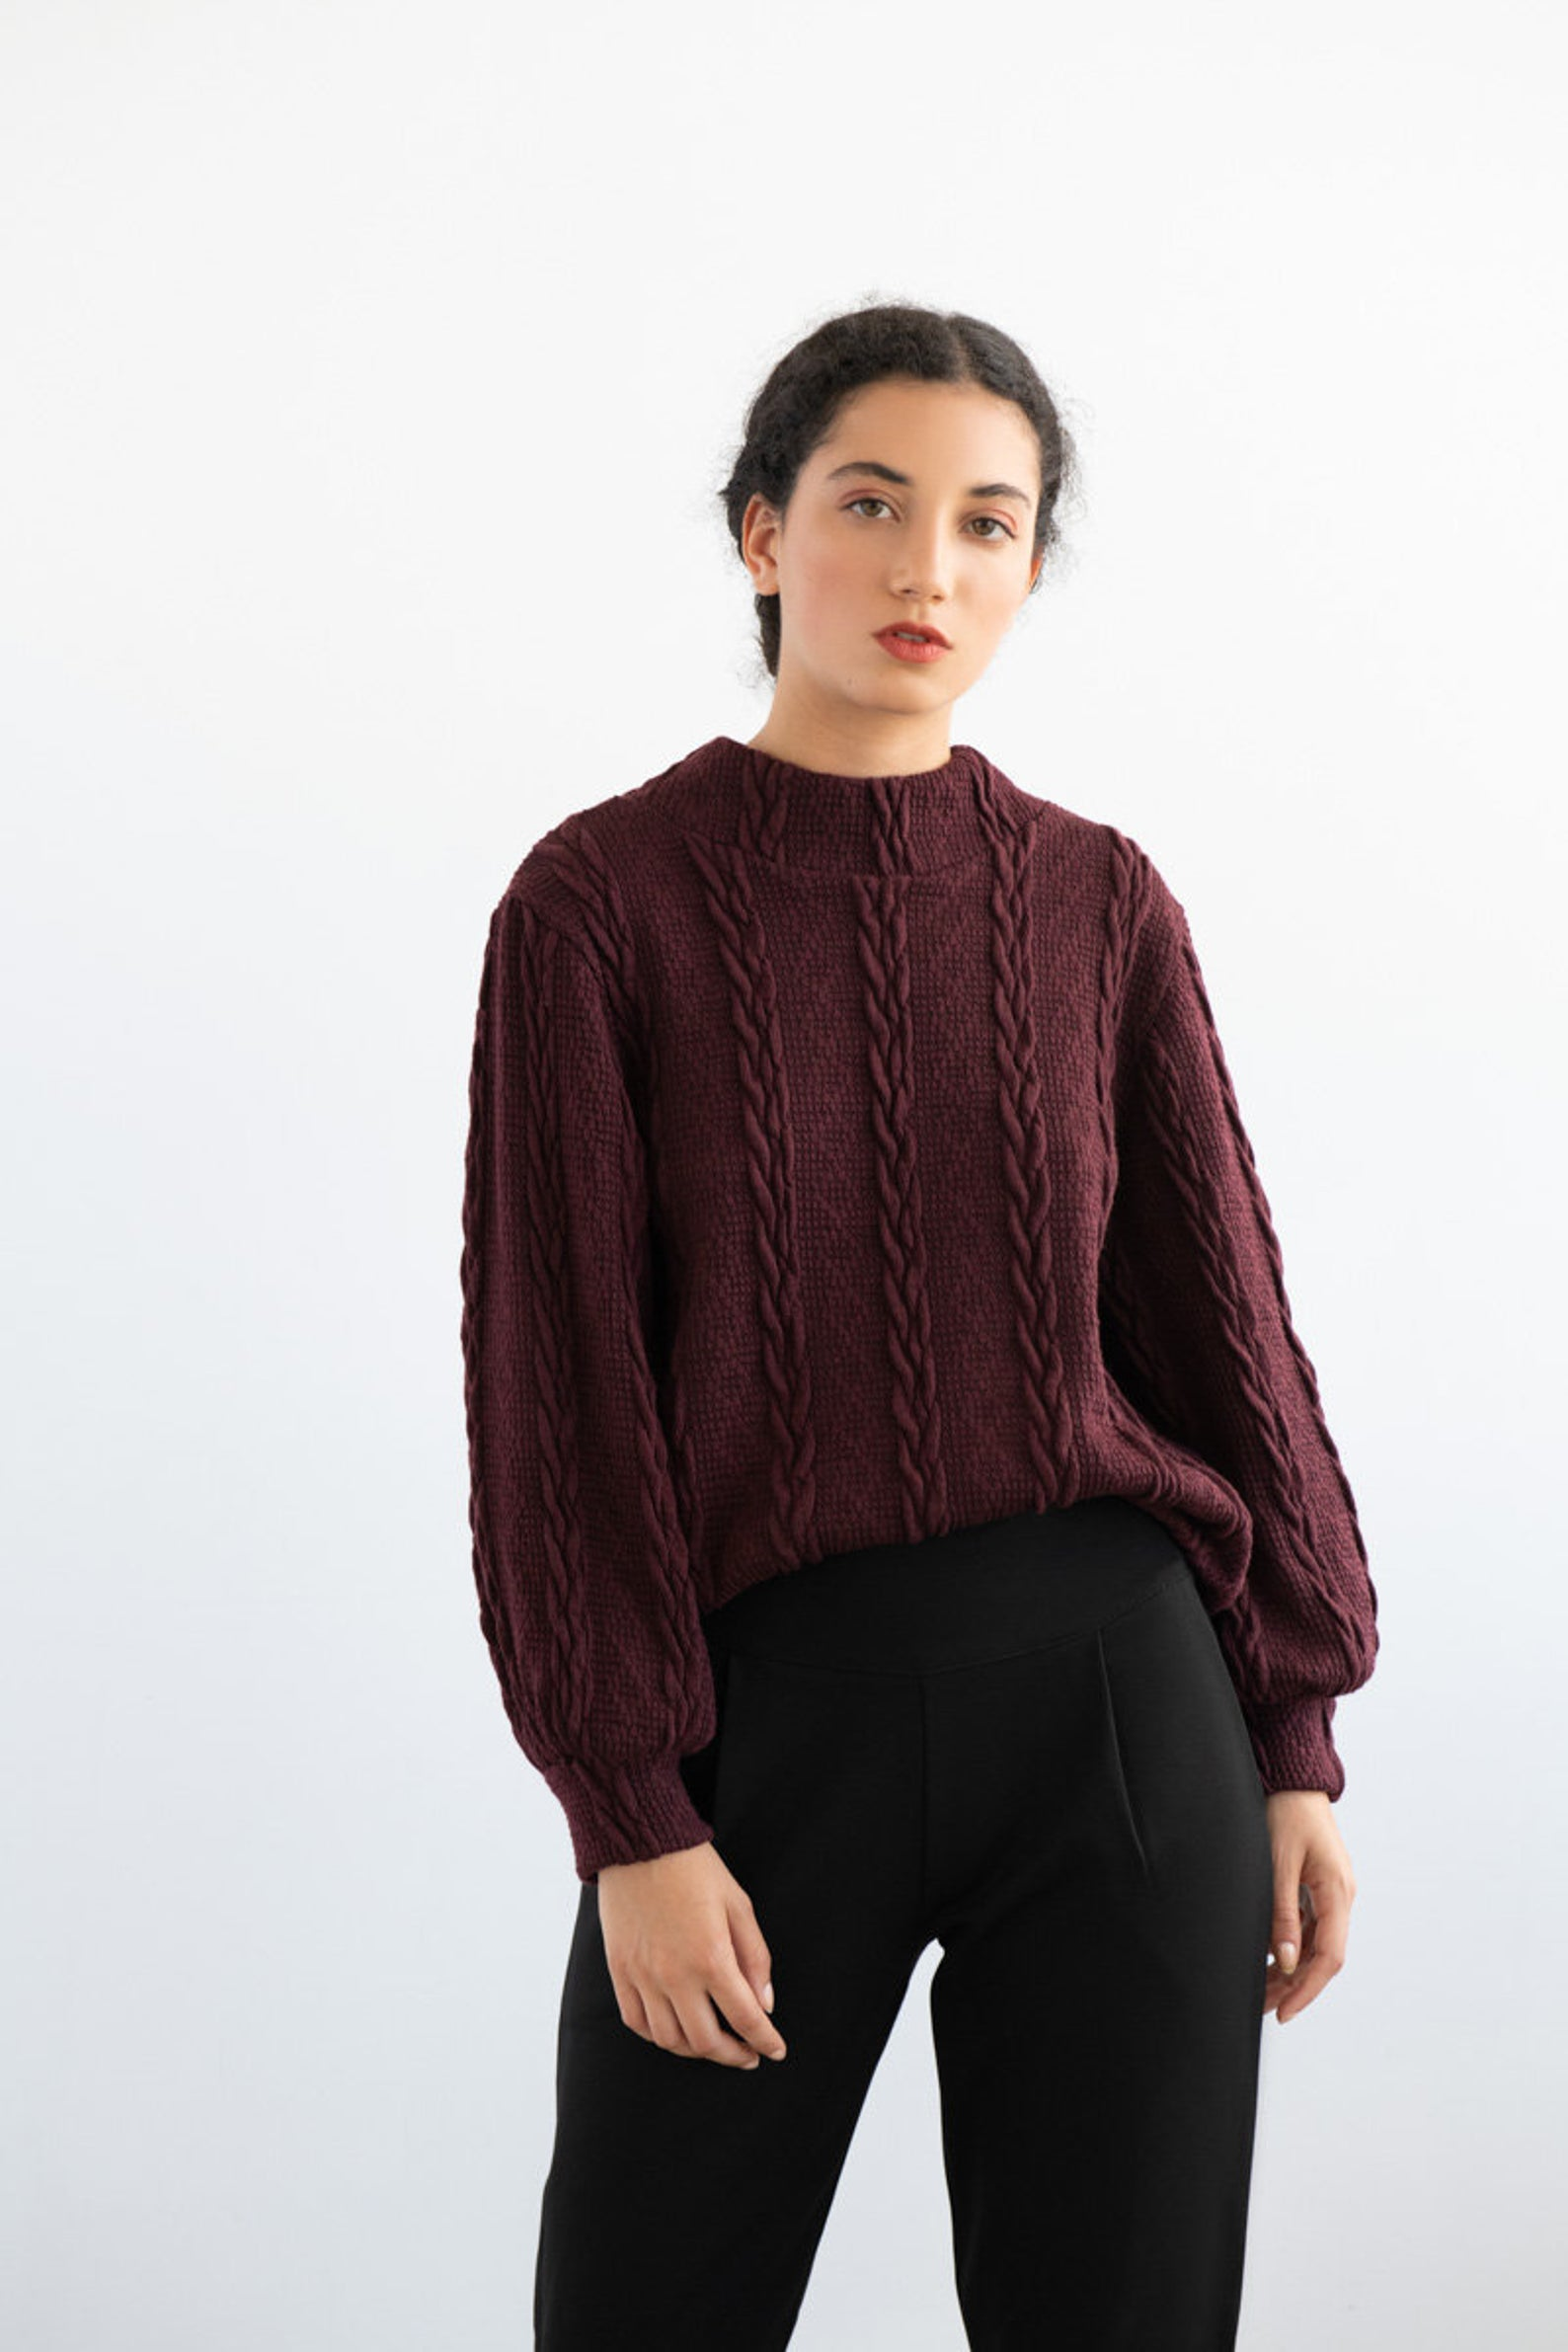 EVE LAVOIE Polaroid Reversible Sweater in Burgundy Braided Knit FW2020/2021 (full-length, front view)